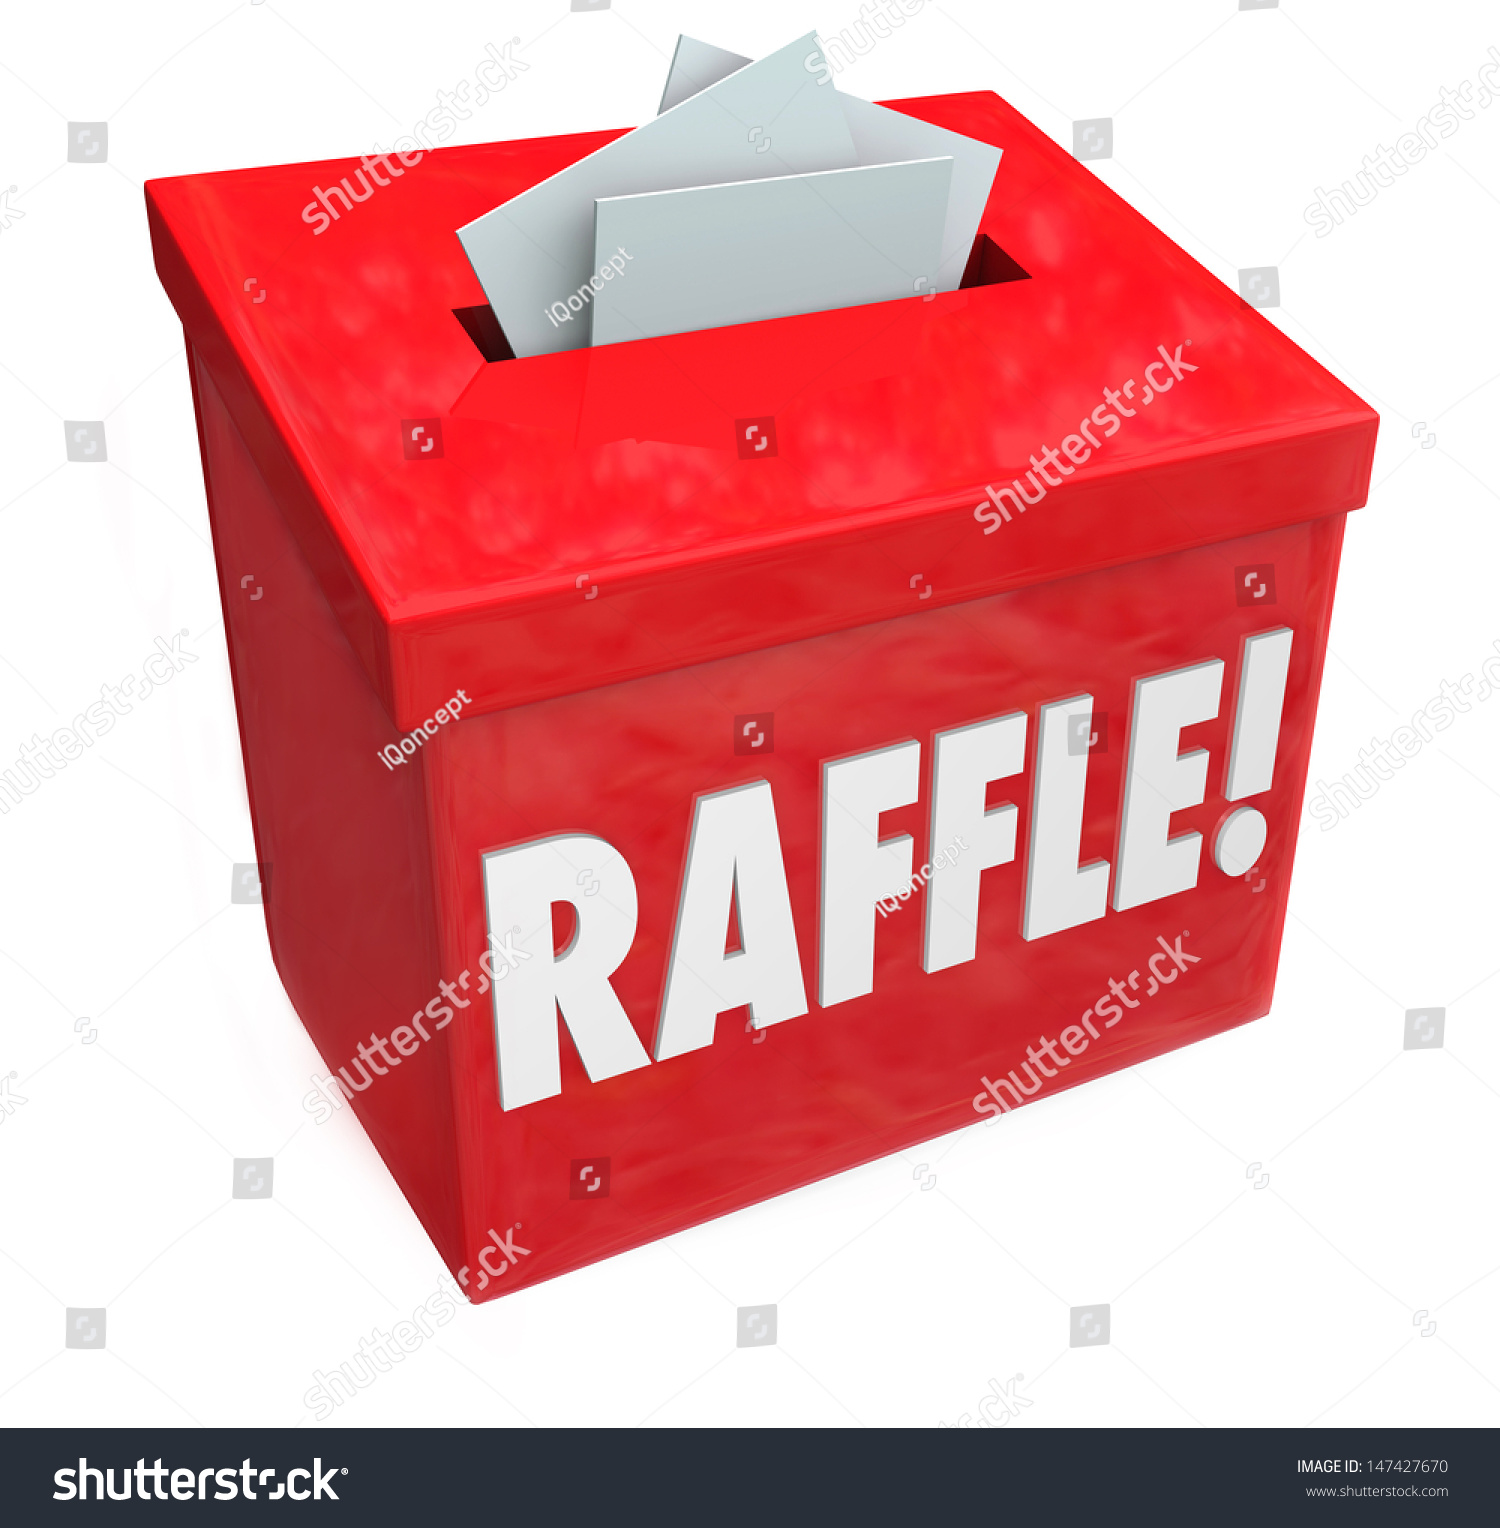 dropping tickets inside raffle box 5050 stock illustration dropping tickets inside a raffle box for a 50 50 or other fundraising drawing hoping